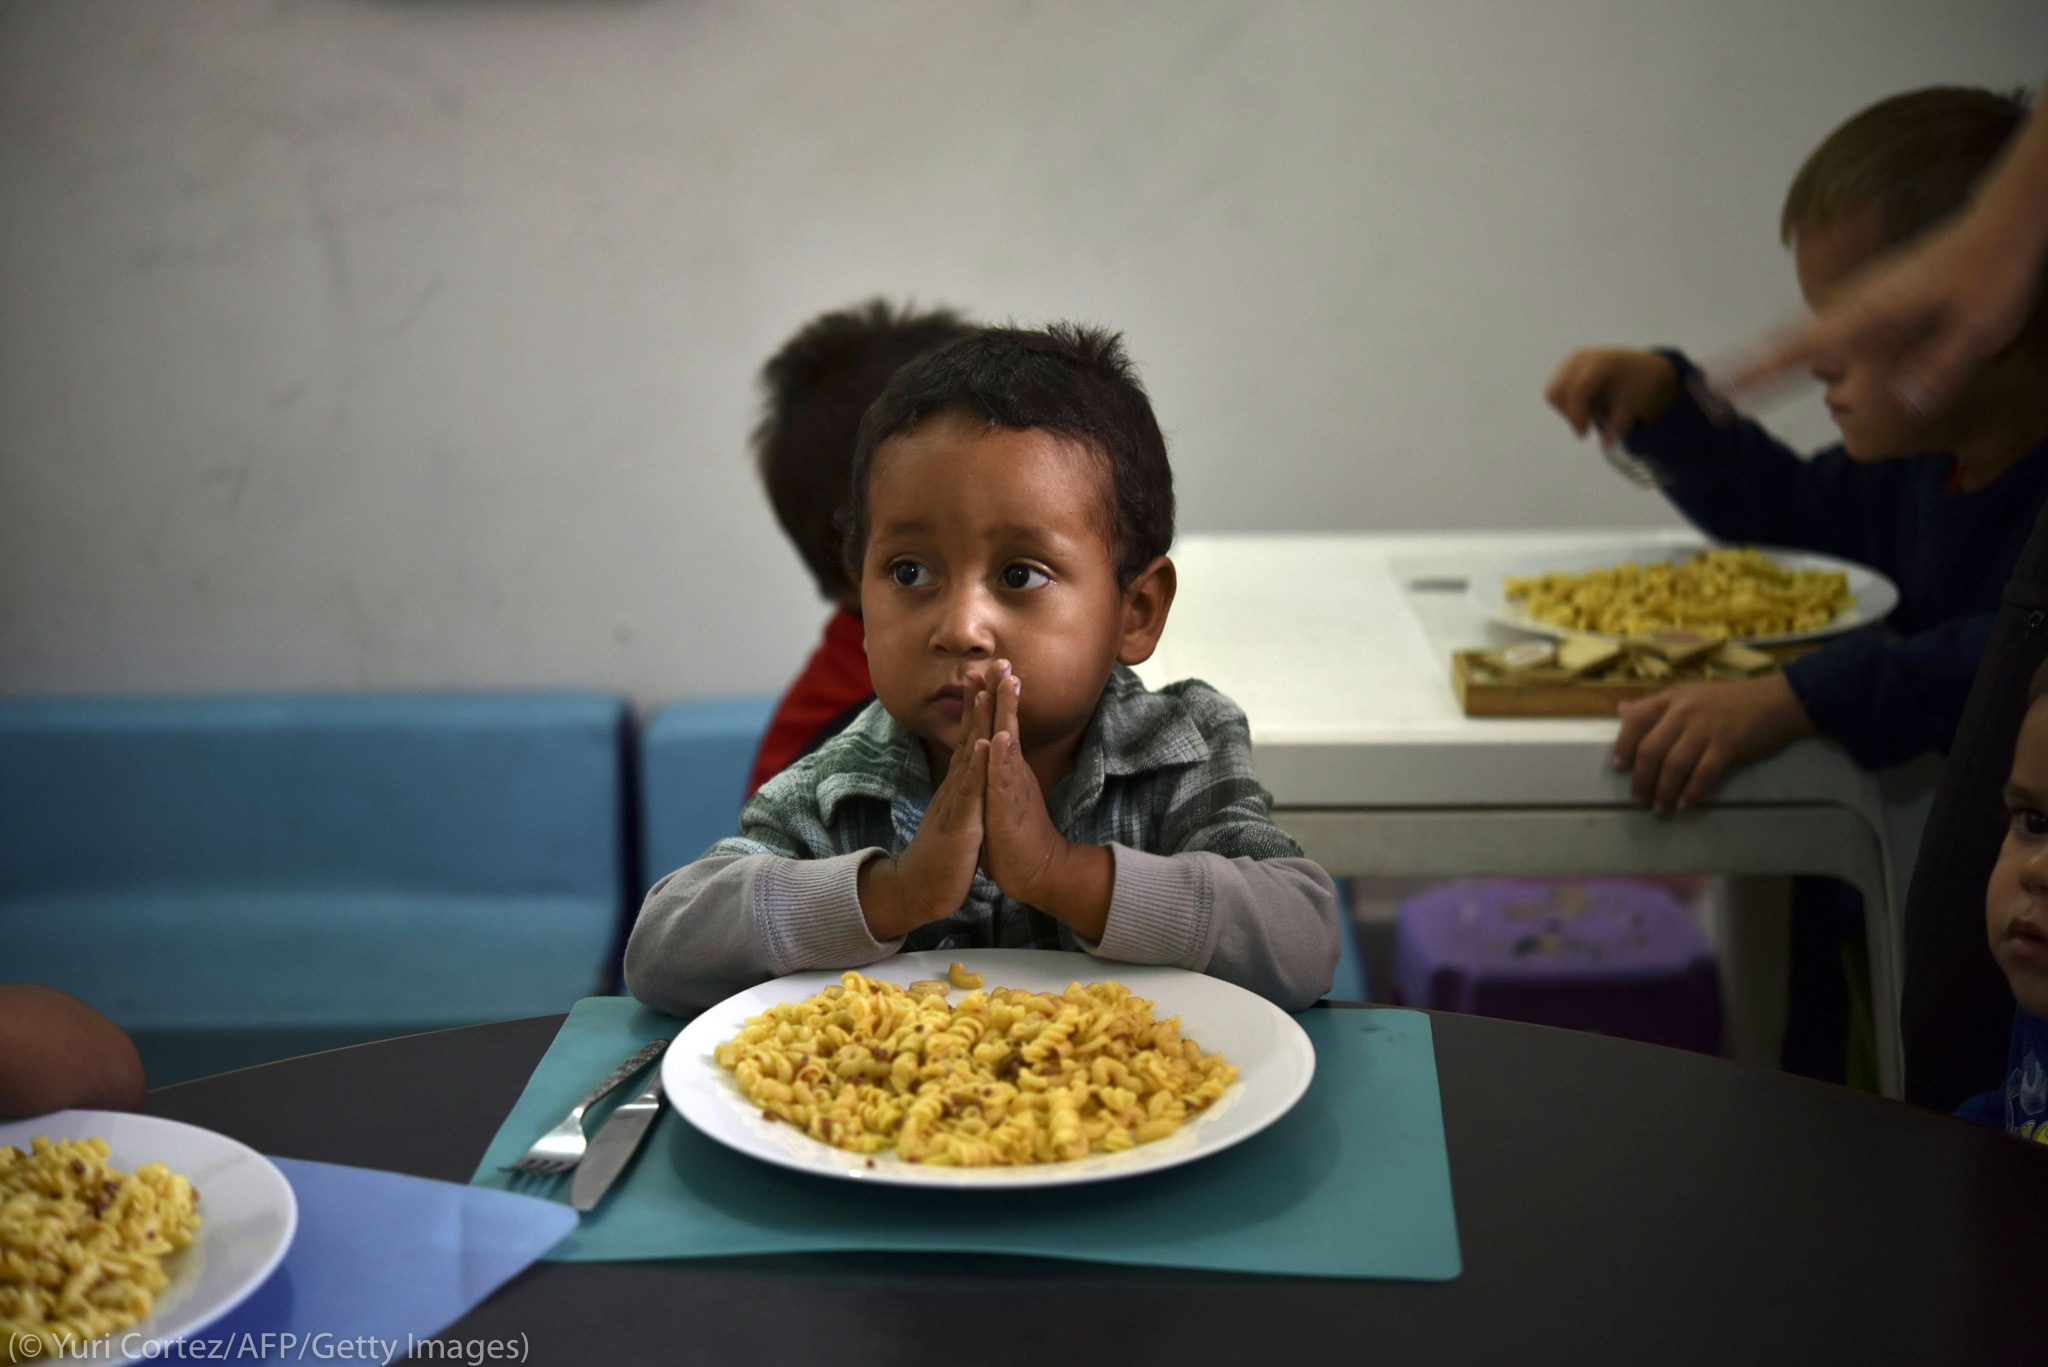 Child praying before eating (©Yuri Cortez/AFP/Getty Images)